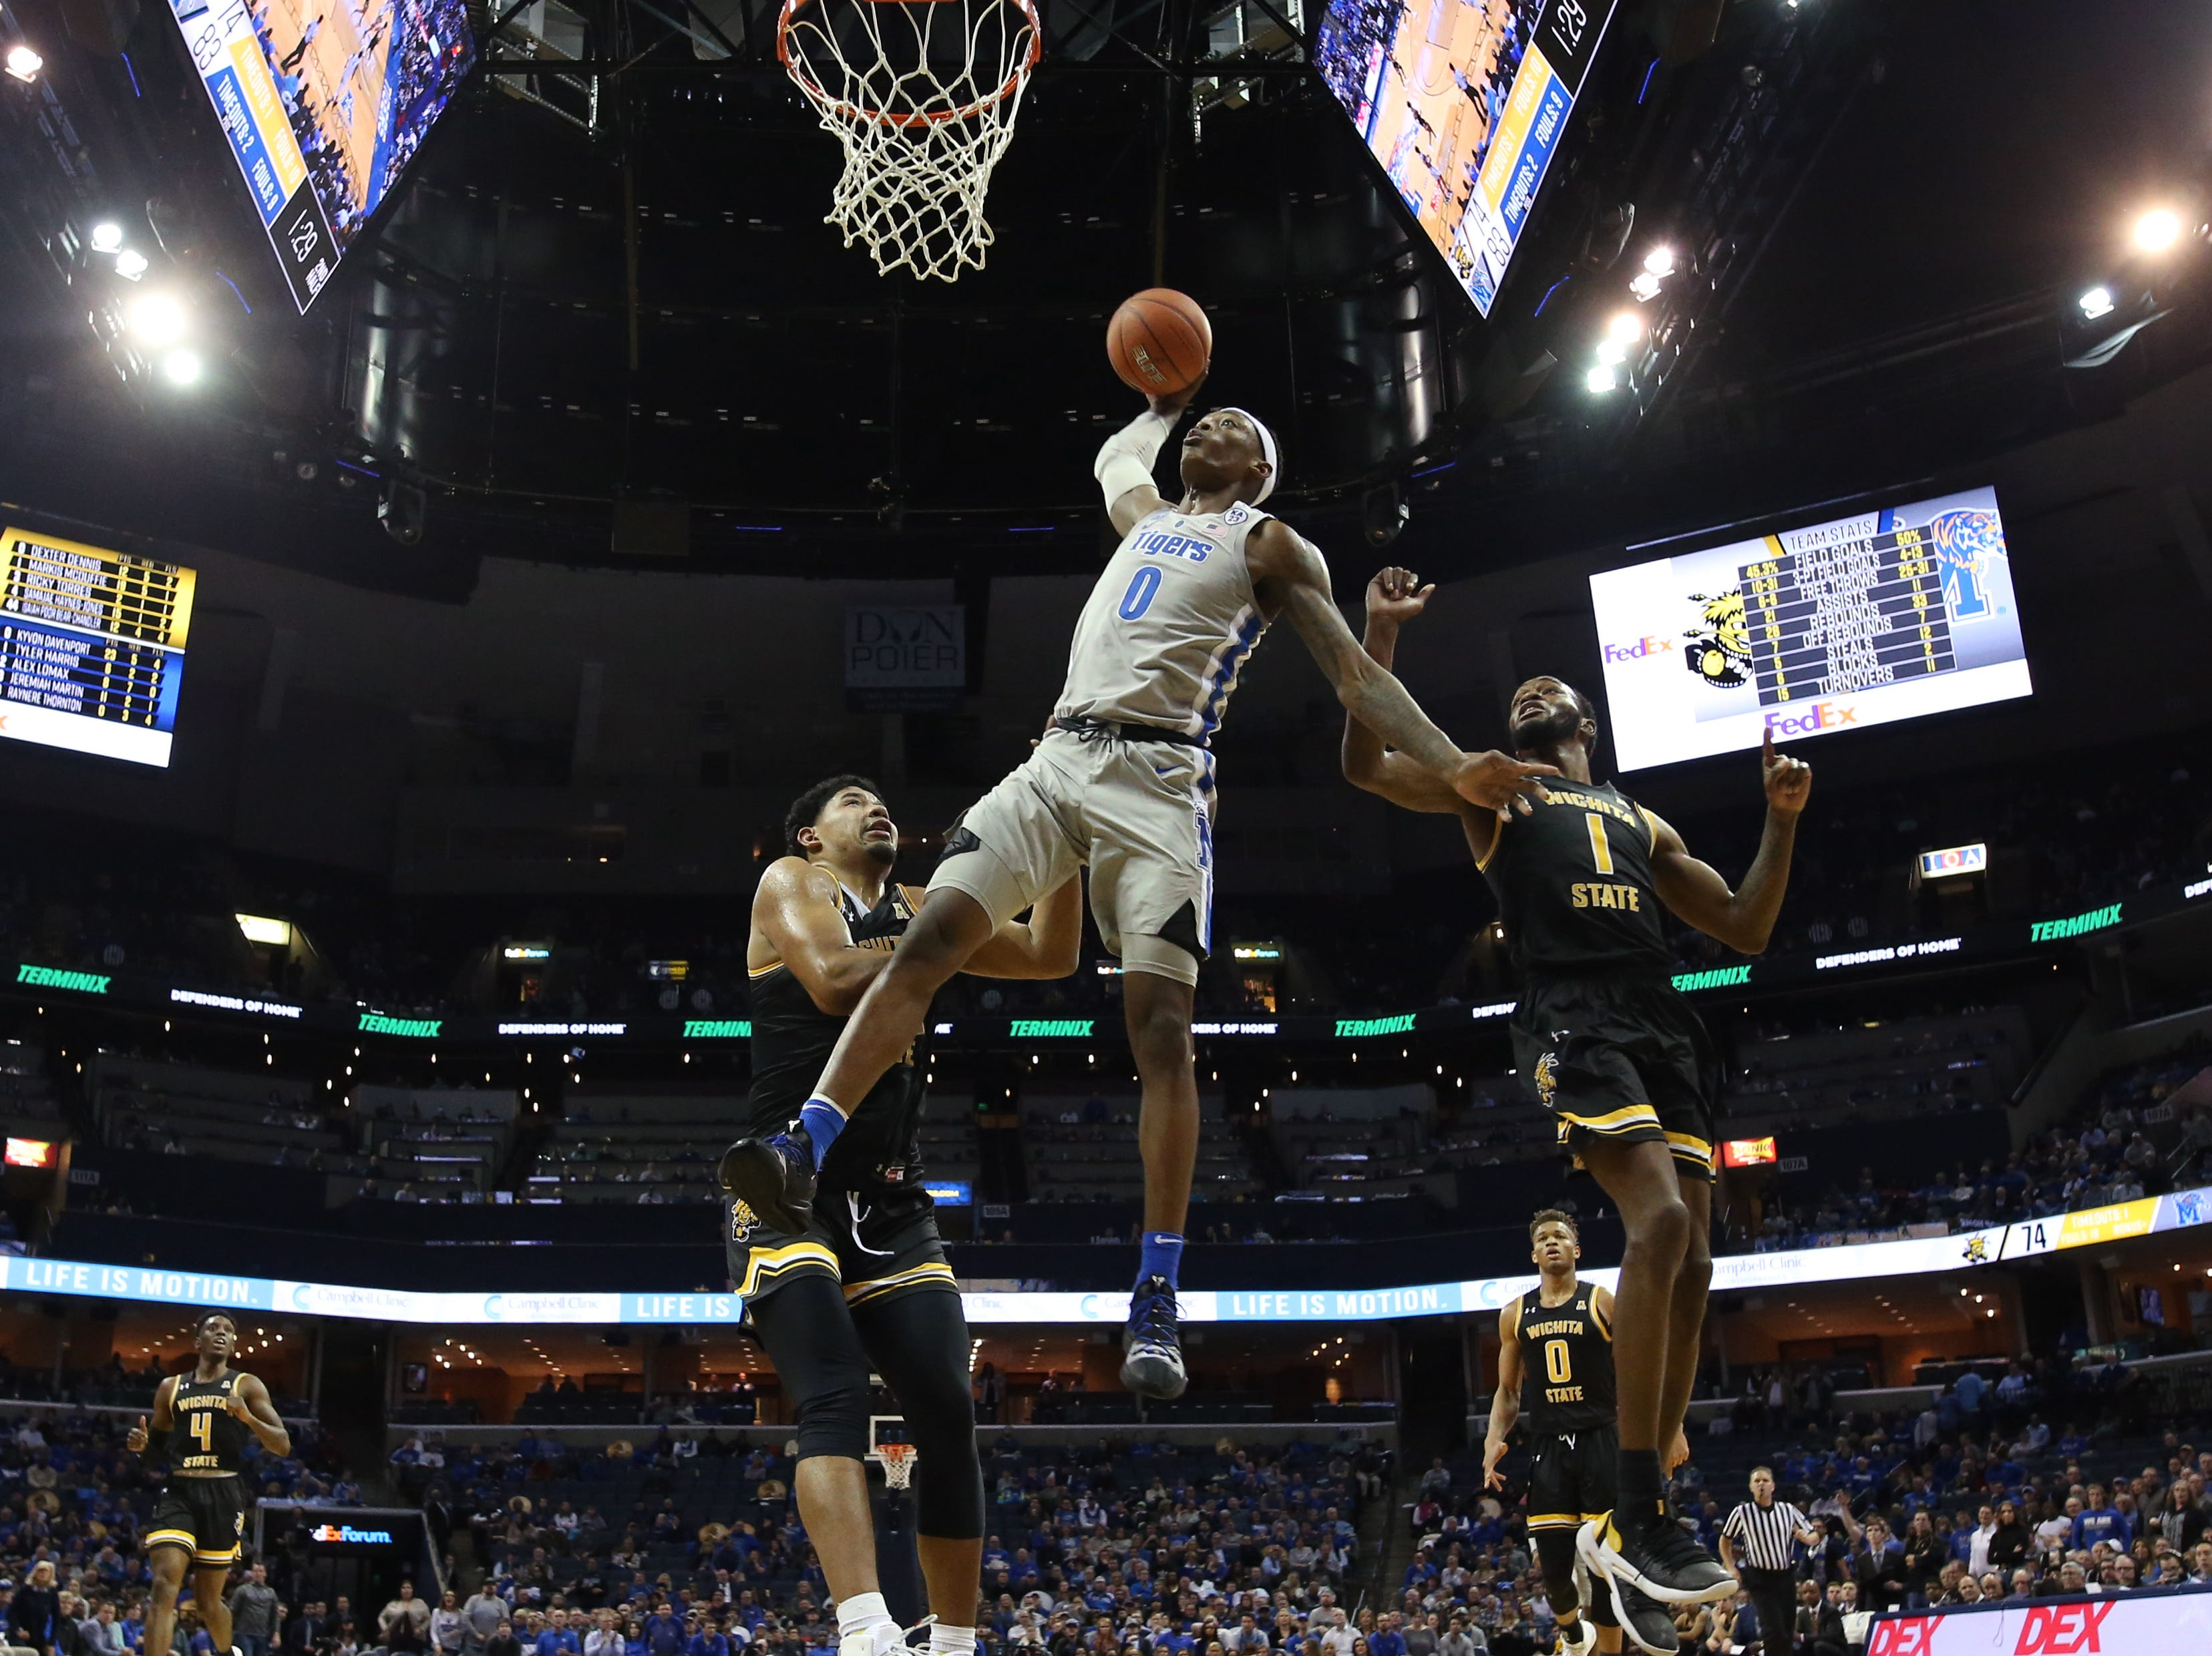 Memphis Tigers forward Kyvon Davenport dunks the ball against the Wichita State Shockers during their game at the FedExForum on Thursday, Jan. 3, 2019.